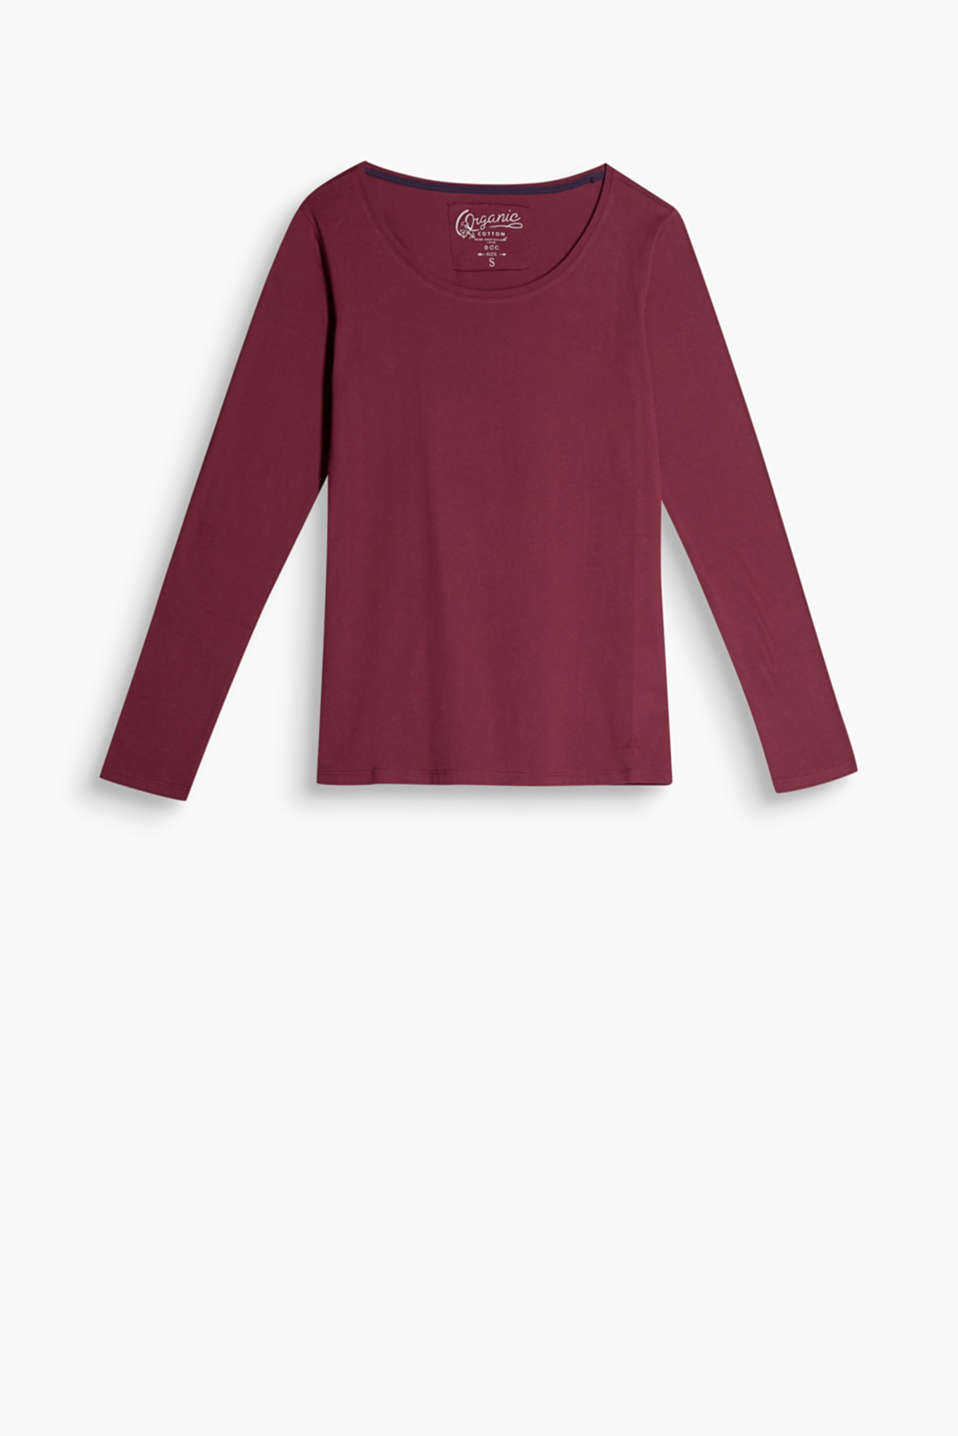 Made of soft organic cotton: slightly fitted basic long sleeve top with a deep round neckline.